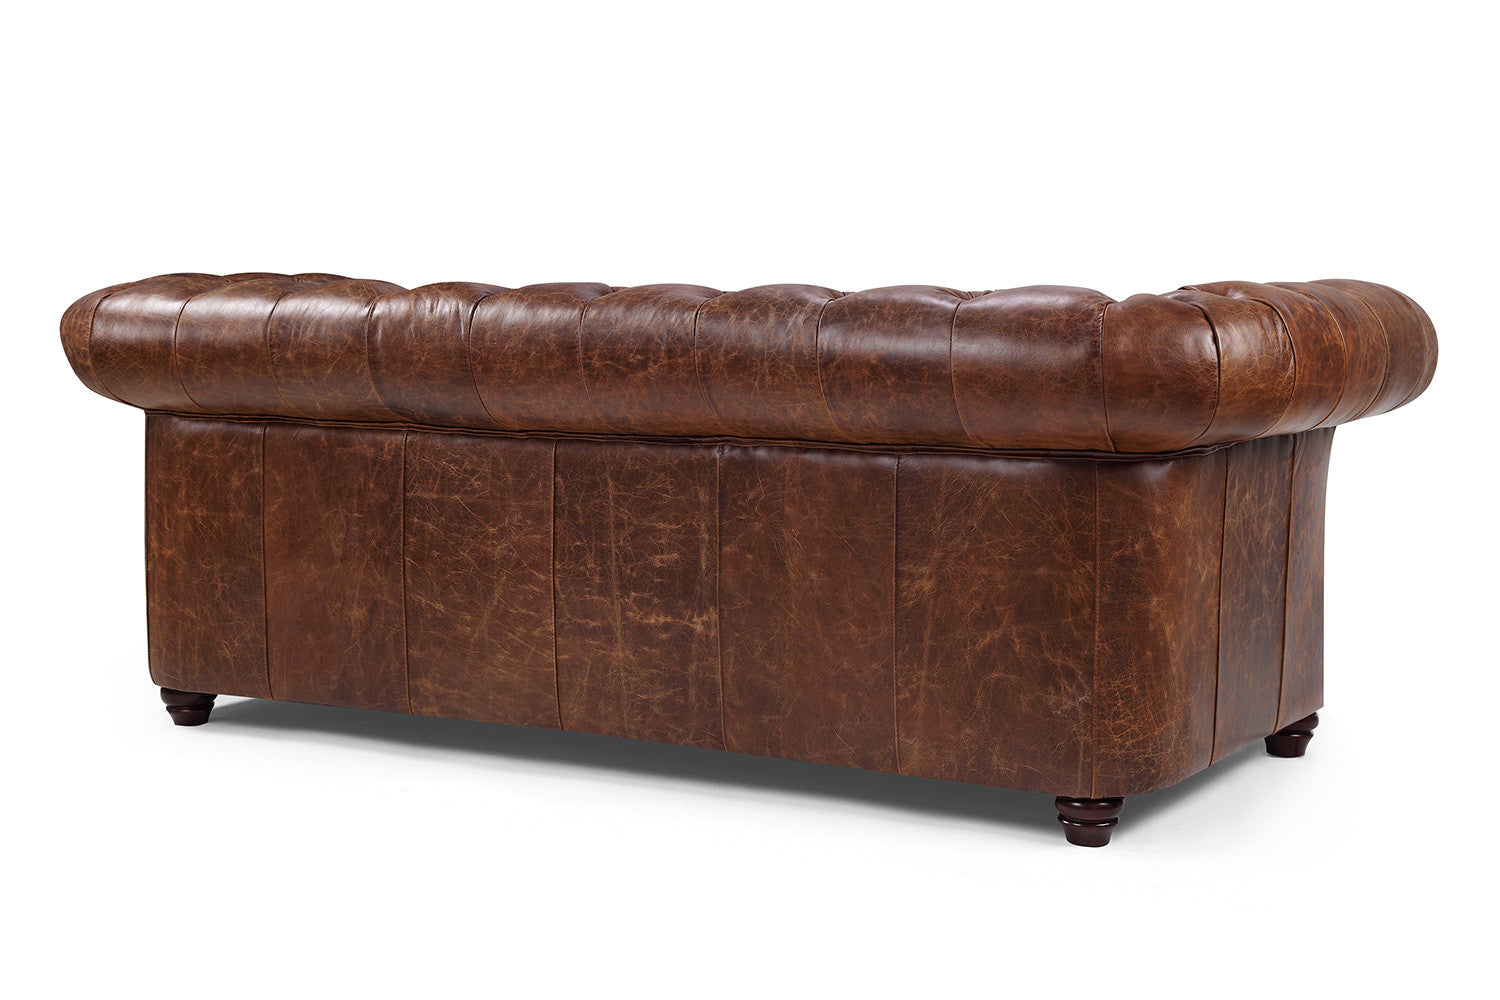 The Westminster Chesterfield Leather Sofa | Rose and Moore